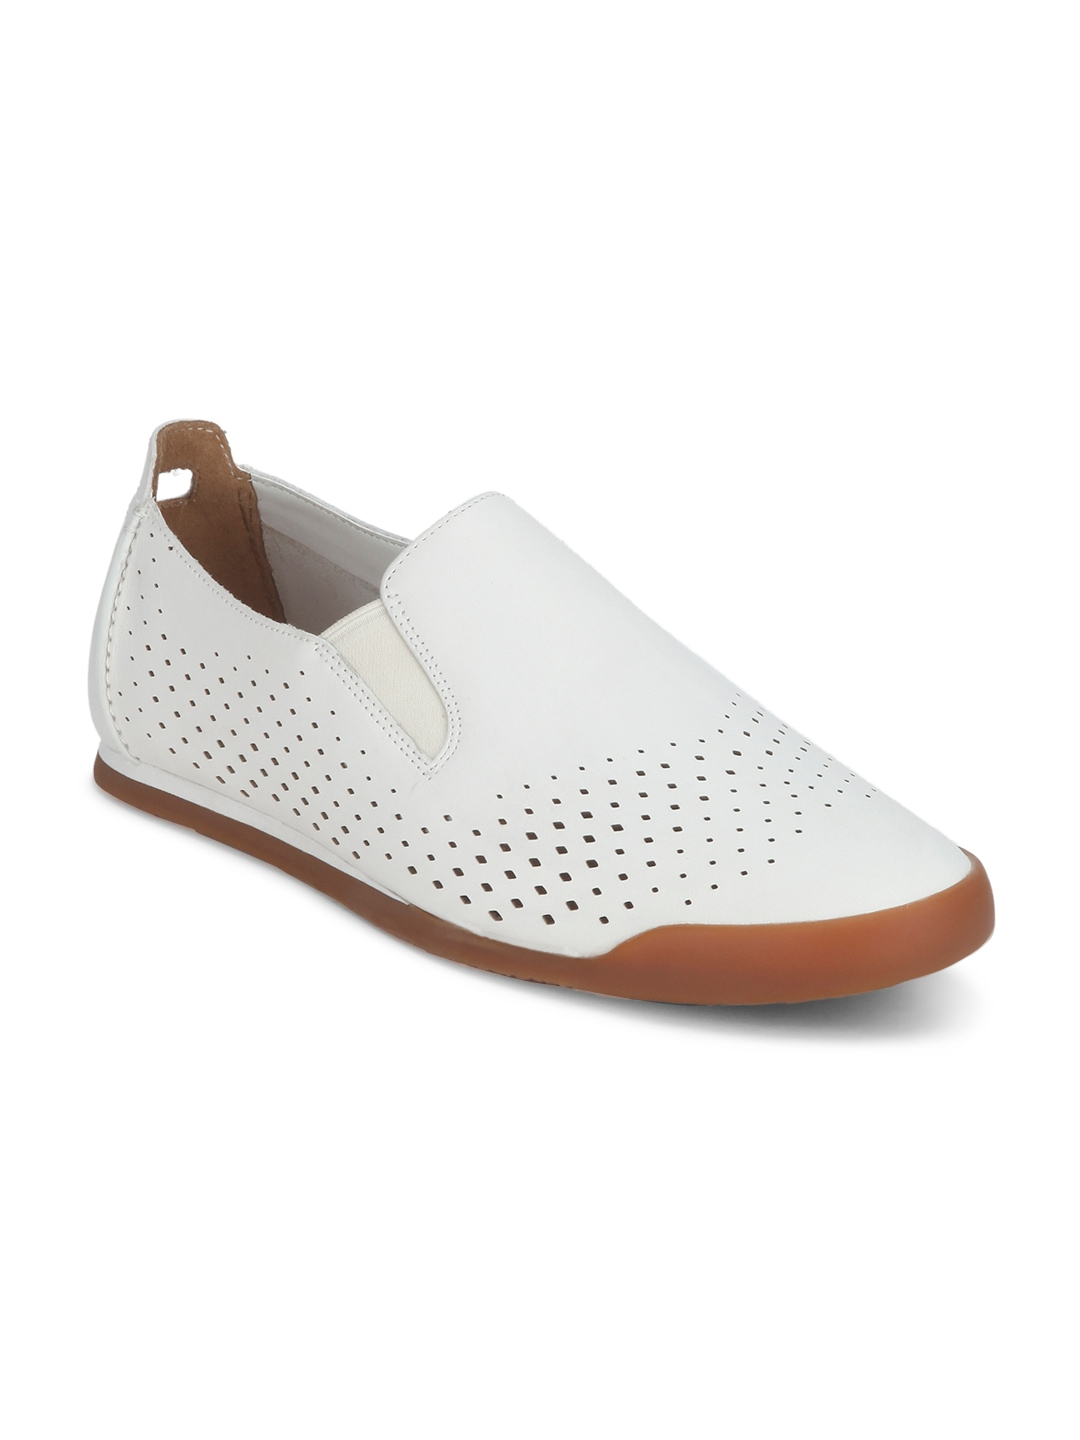 Glass Kitchen Canisters Clarks Men White Leather Perforated Sneakers Clarks Casual